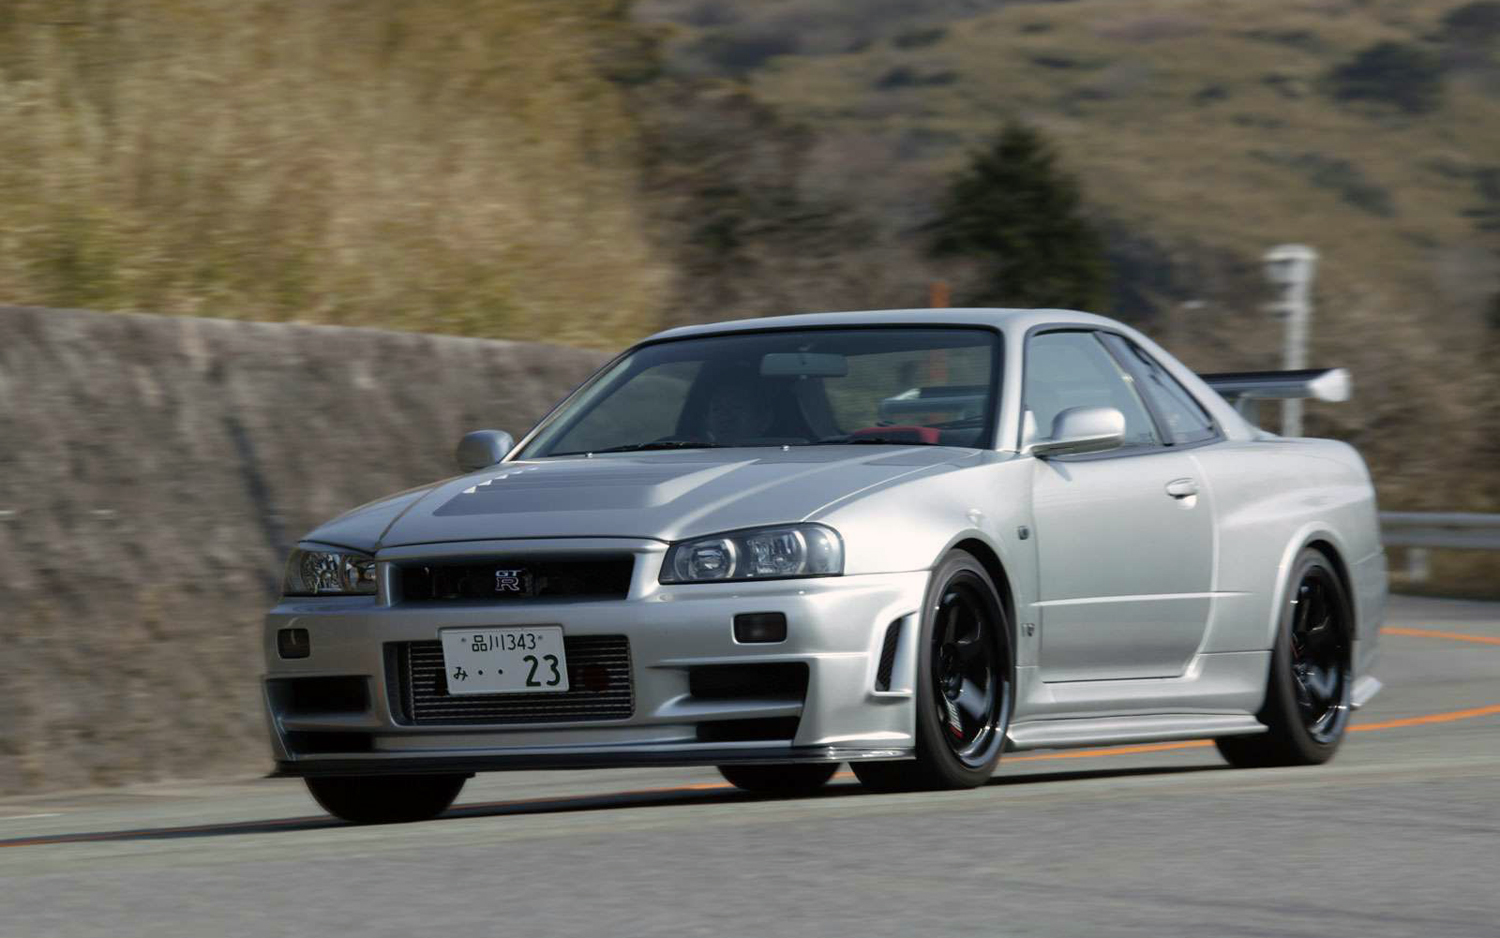 Feds Begin to Seize Illegal Nissan Skyline GT-Rs in